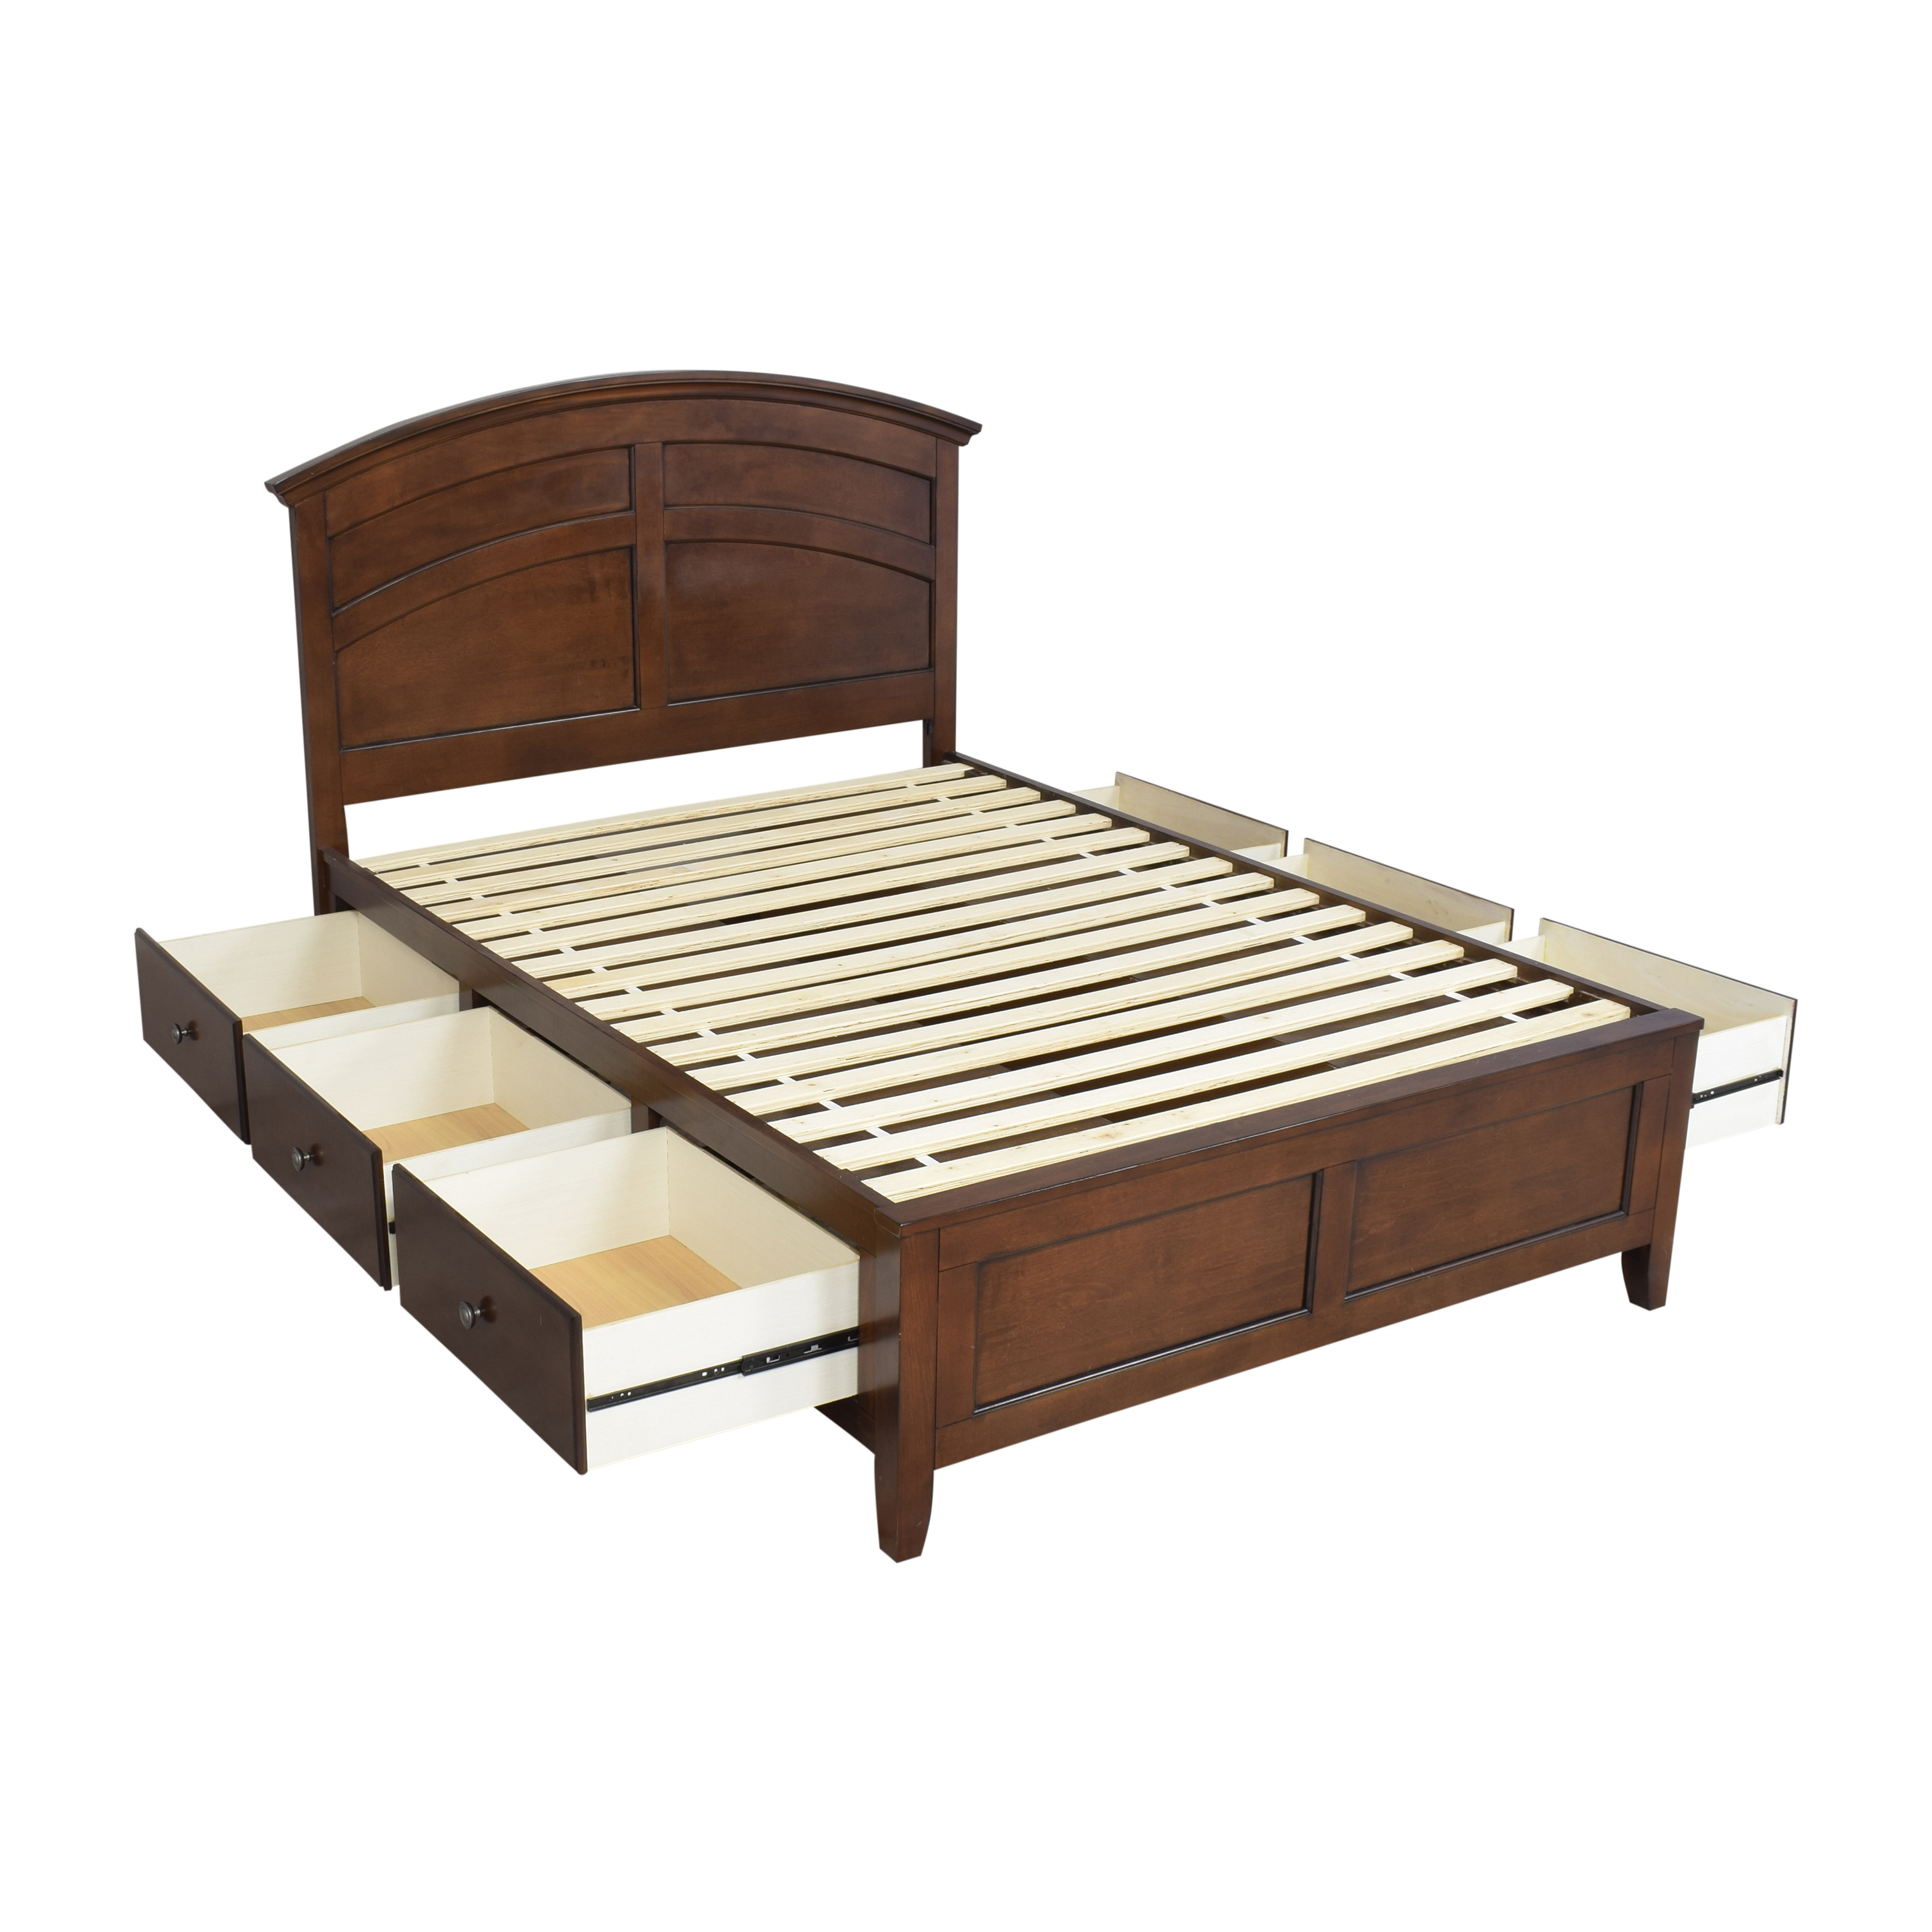 Raymour & Flanigan Raymour & Flanigan Kylie Platform Storage Full Bed for sale